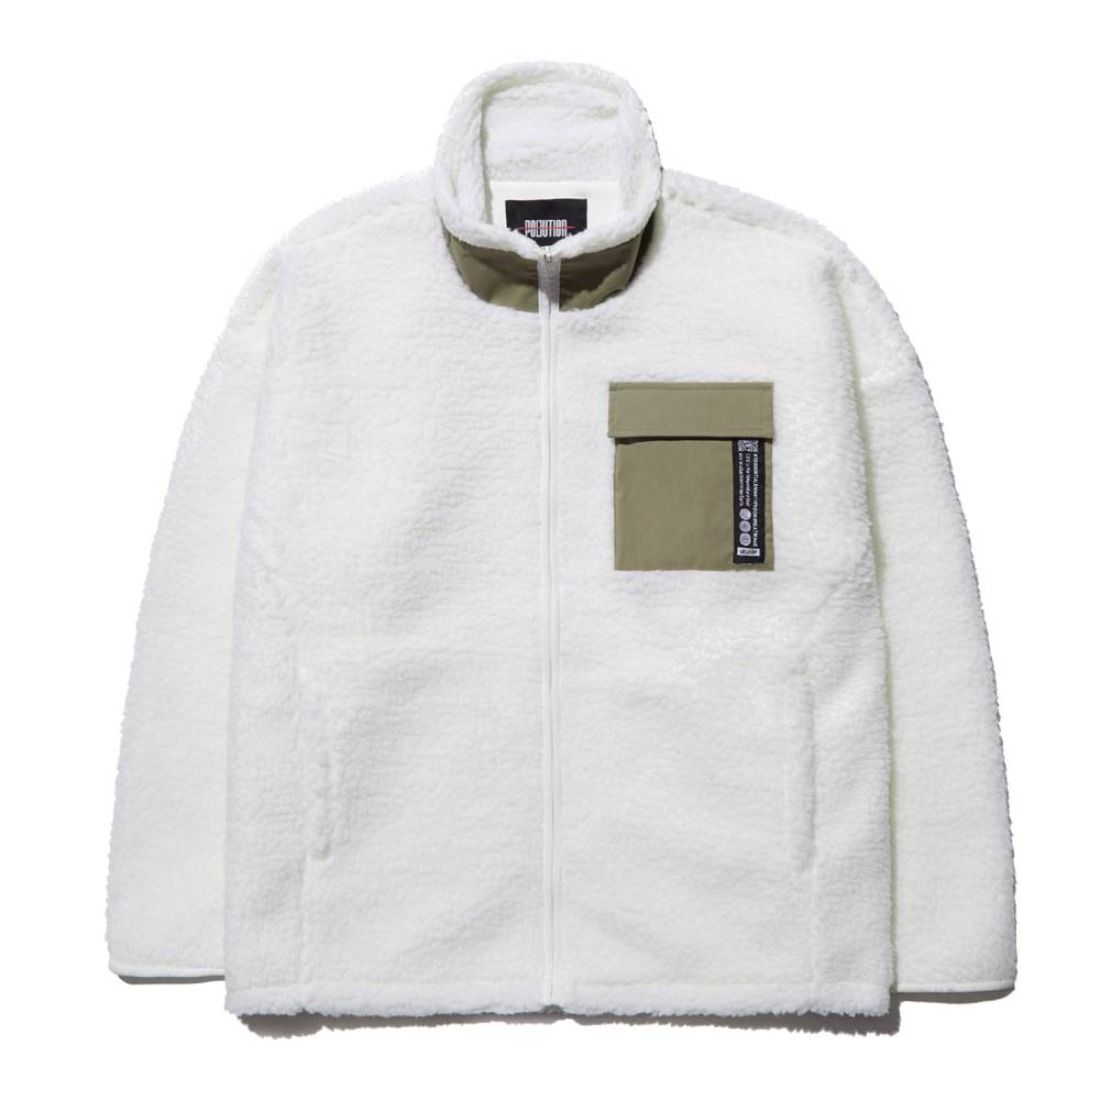 MIXED FLEECE ZIP-UP JACKET IVORY